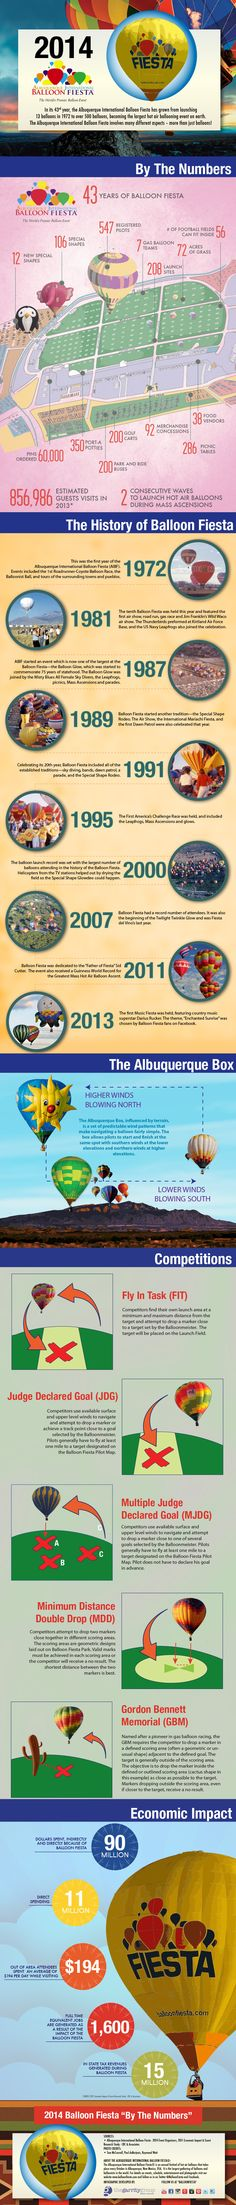 In its 43rd year, the Albuquerque International Balloon Fiesta has grown from launching  13 balloons in 1972 to over 500 balloons, becoming the largest hot air ballooning event on earth.  The Albuquerque International #BalloonFiesta involves many different aspects – more than just balloons! www.Balloonfiesta.com